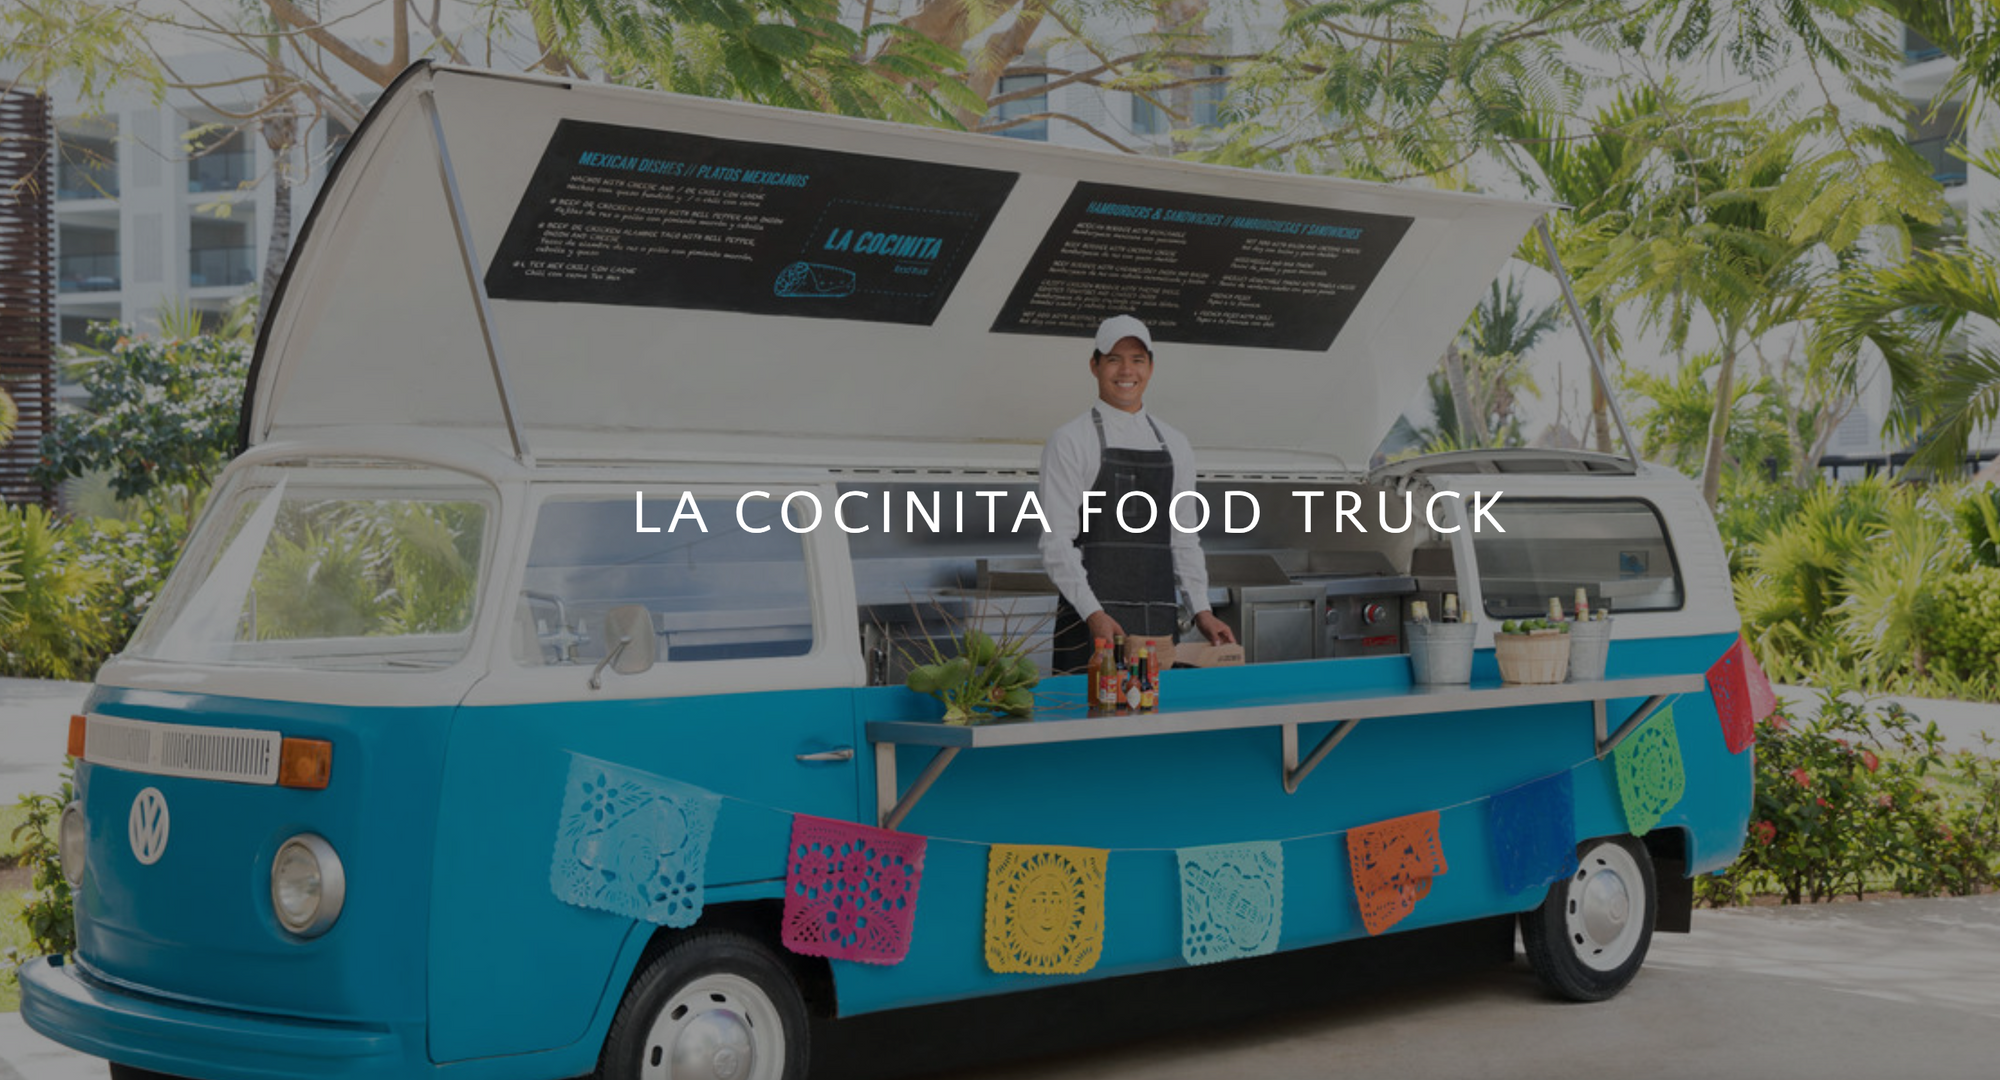 LA COCINITA FOOD TRUCK